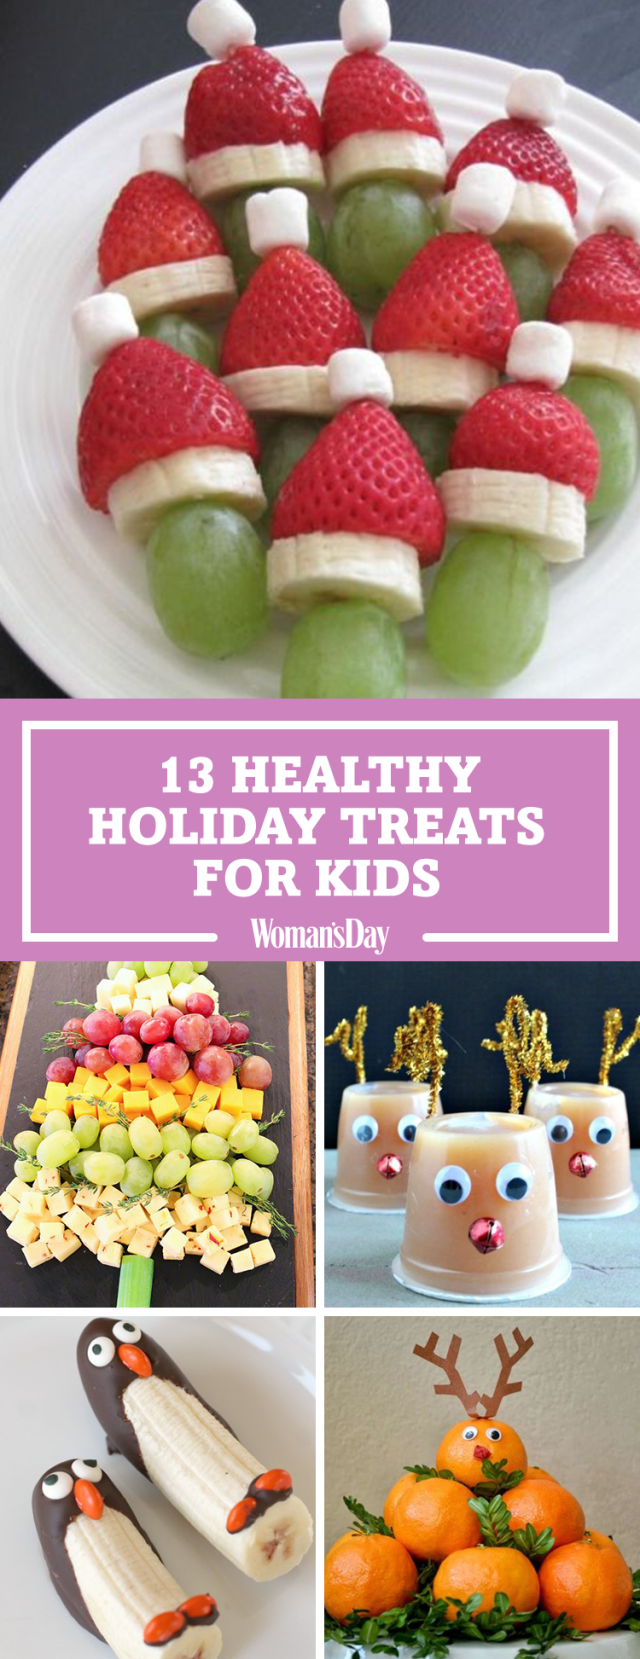 17 healthy christmas snacks for kids easy ideas for holiday snack recipes